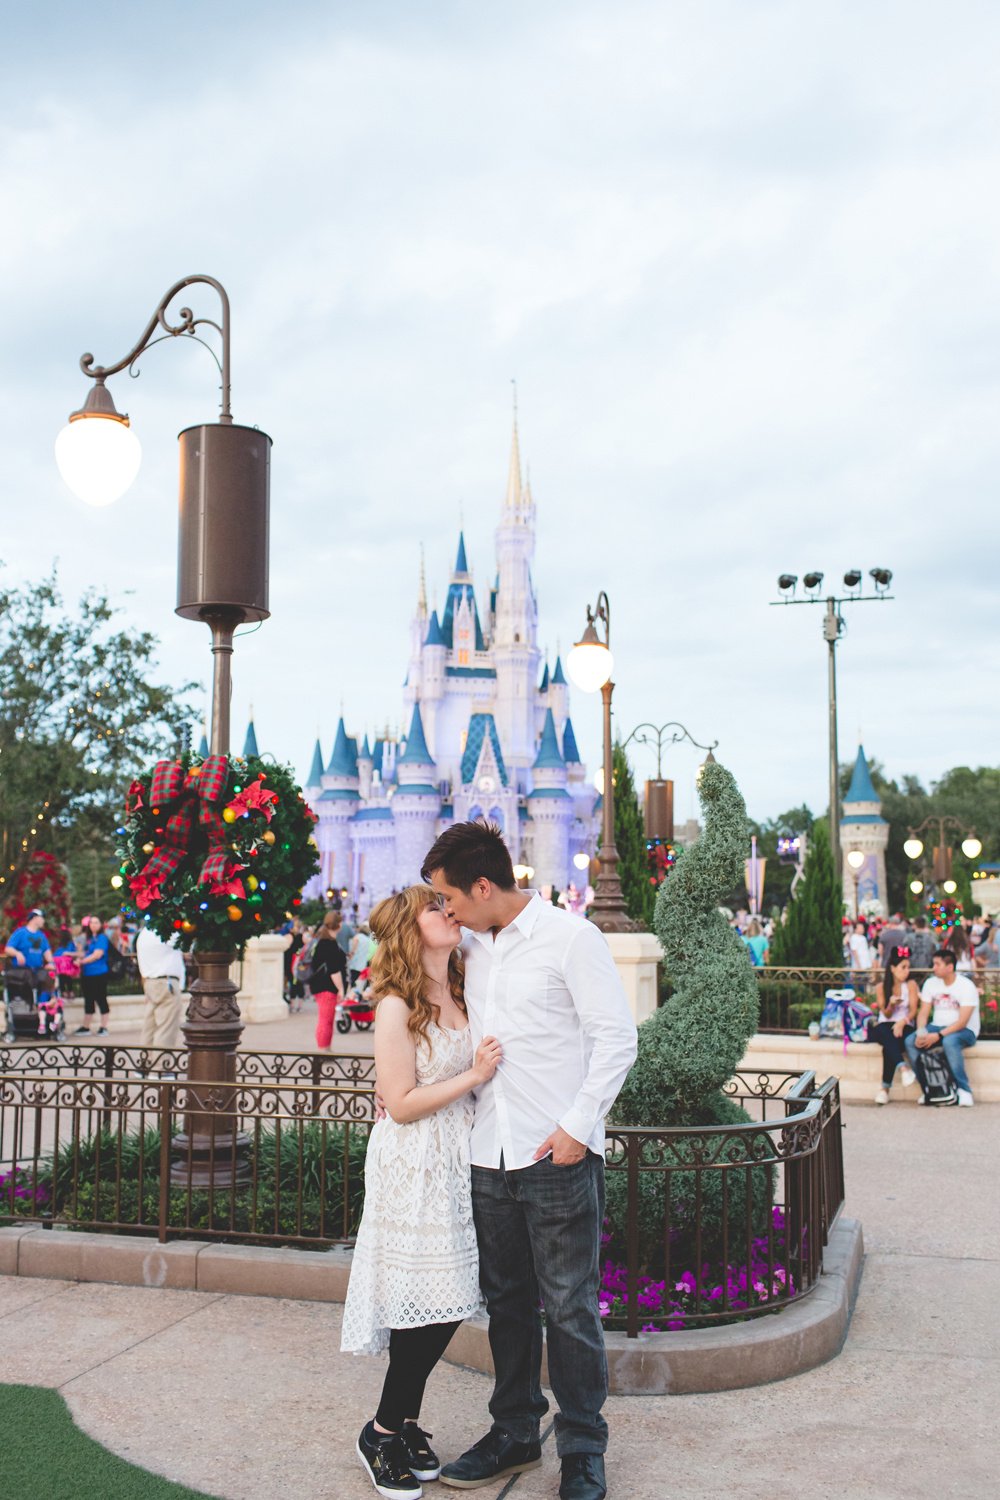 Disney Honeymoon session - Disney Engagement Photos - Disney Wedding Photographer - Destination Orlando Wedding Photographer - Jaime DiOrio (82).jpg